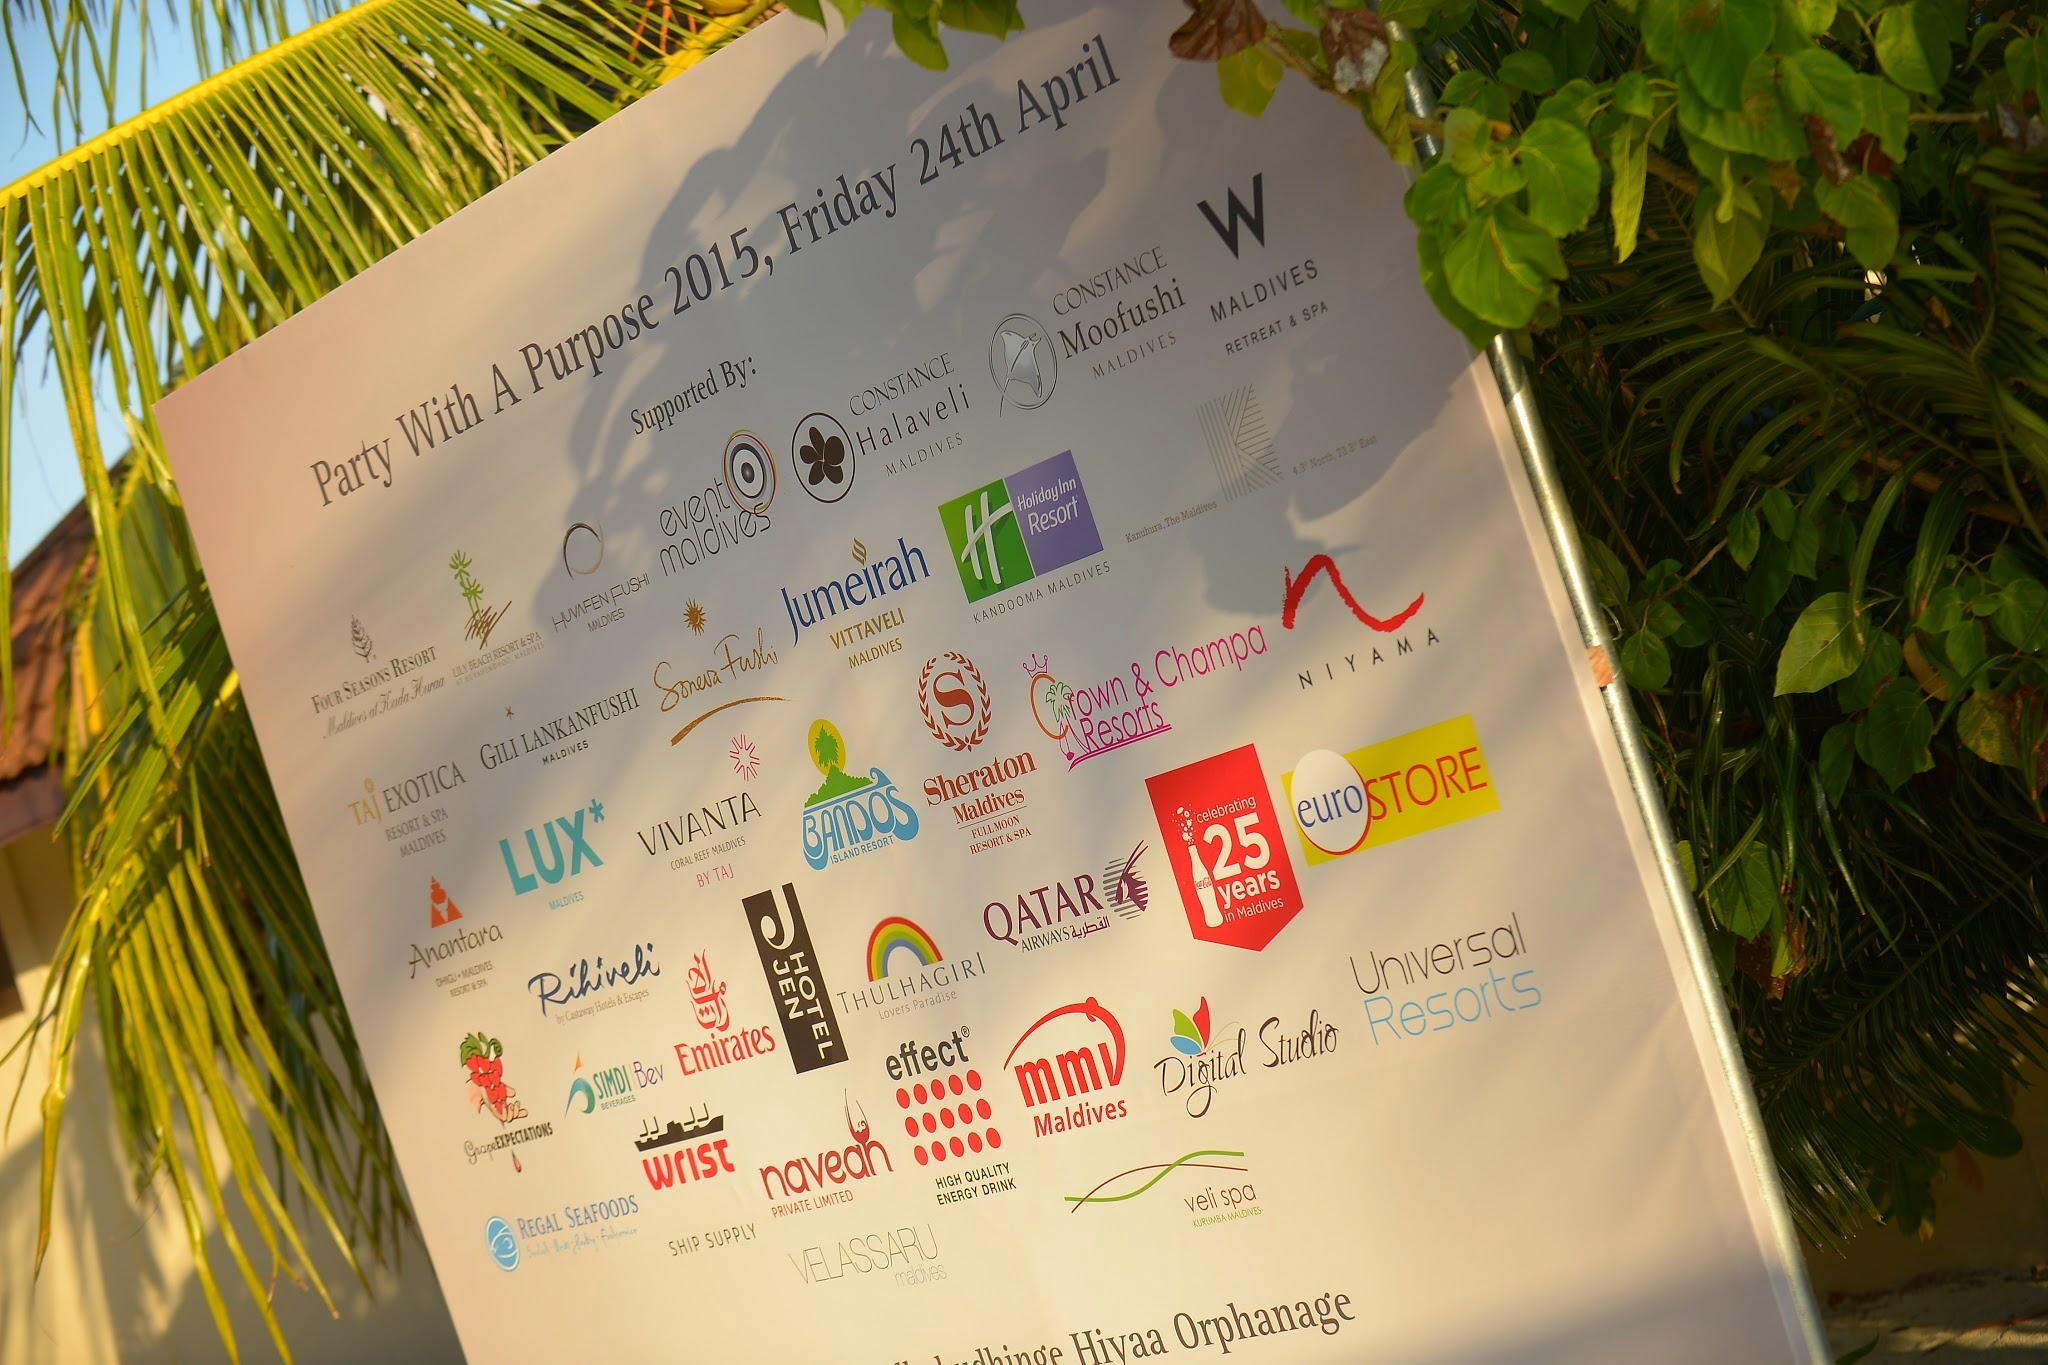 Sponsors for Party with a Purpose